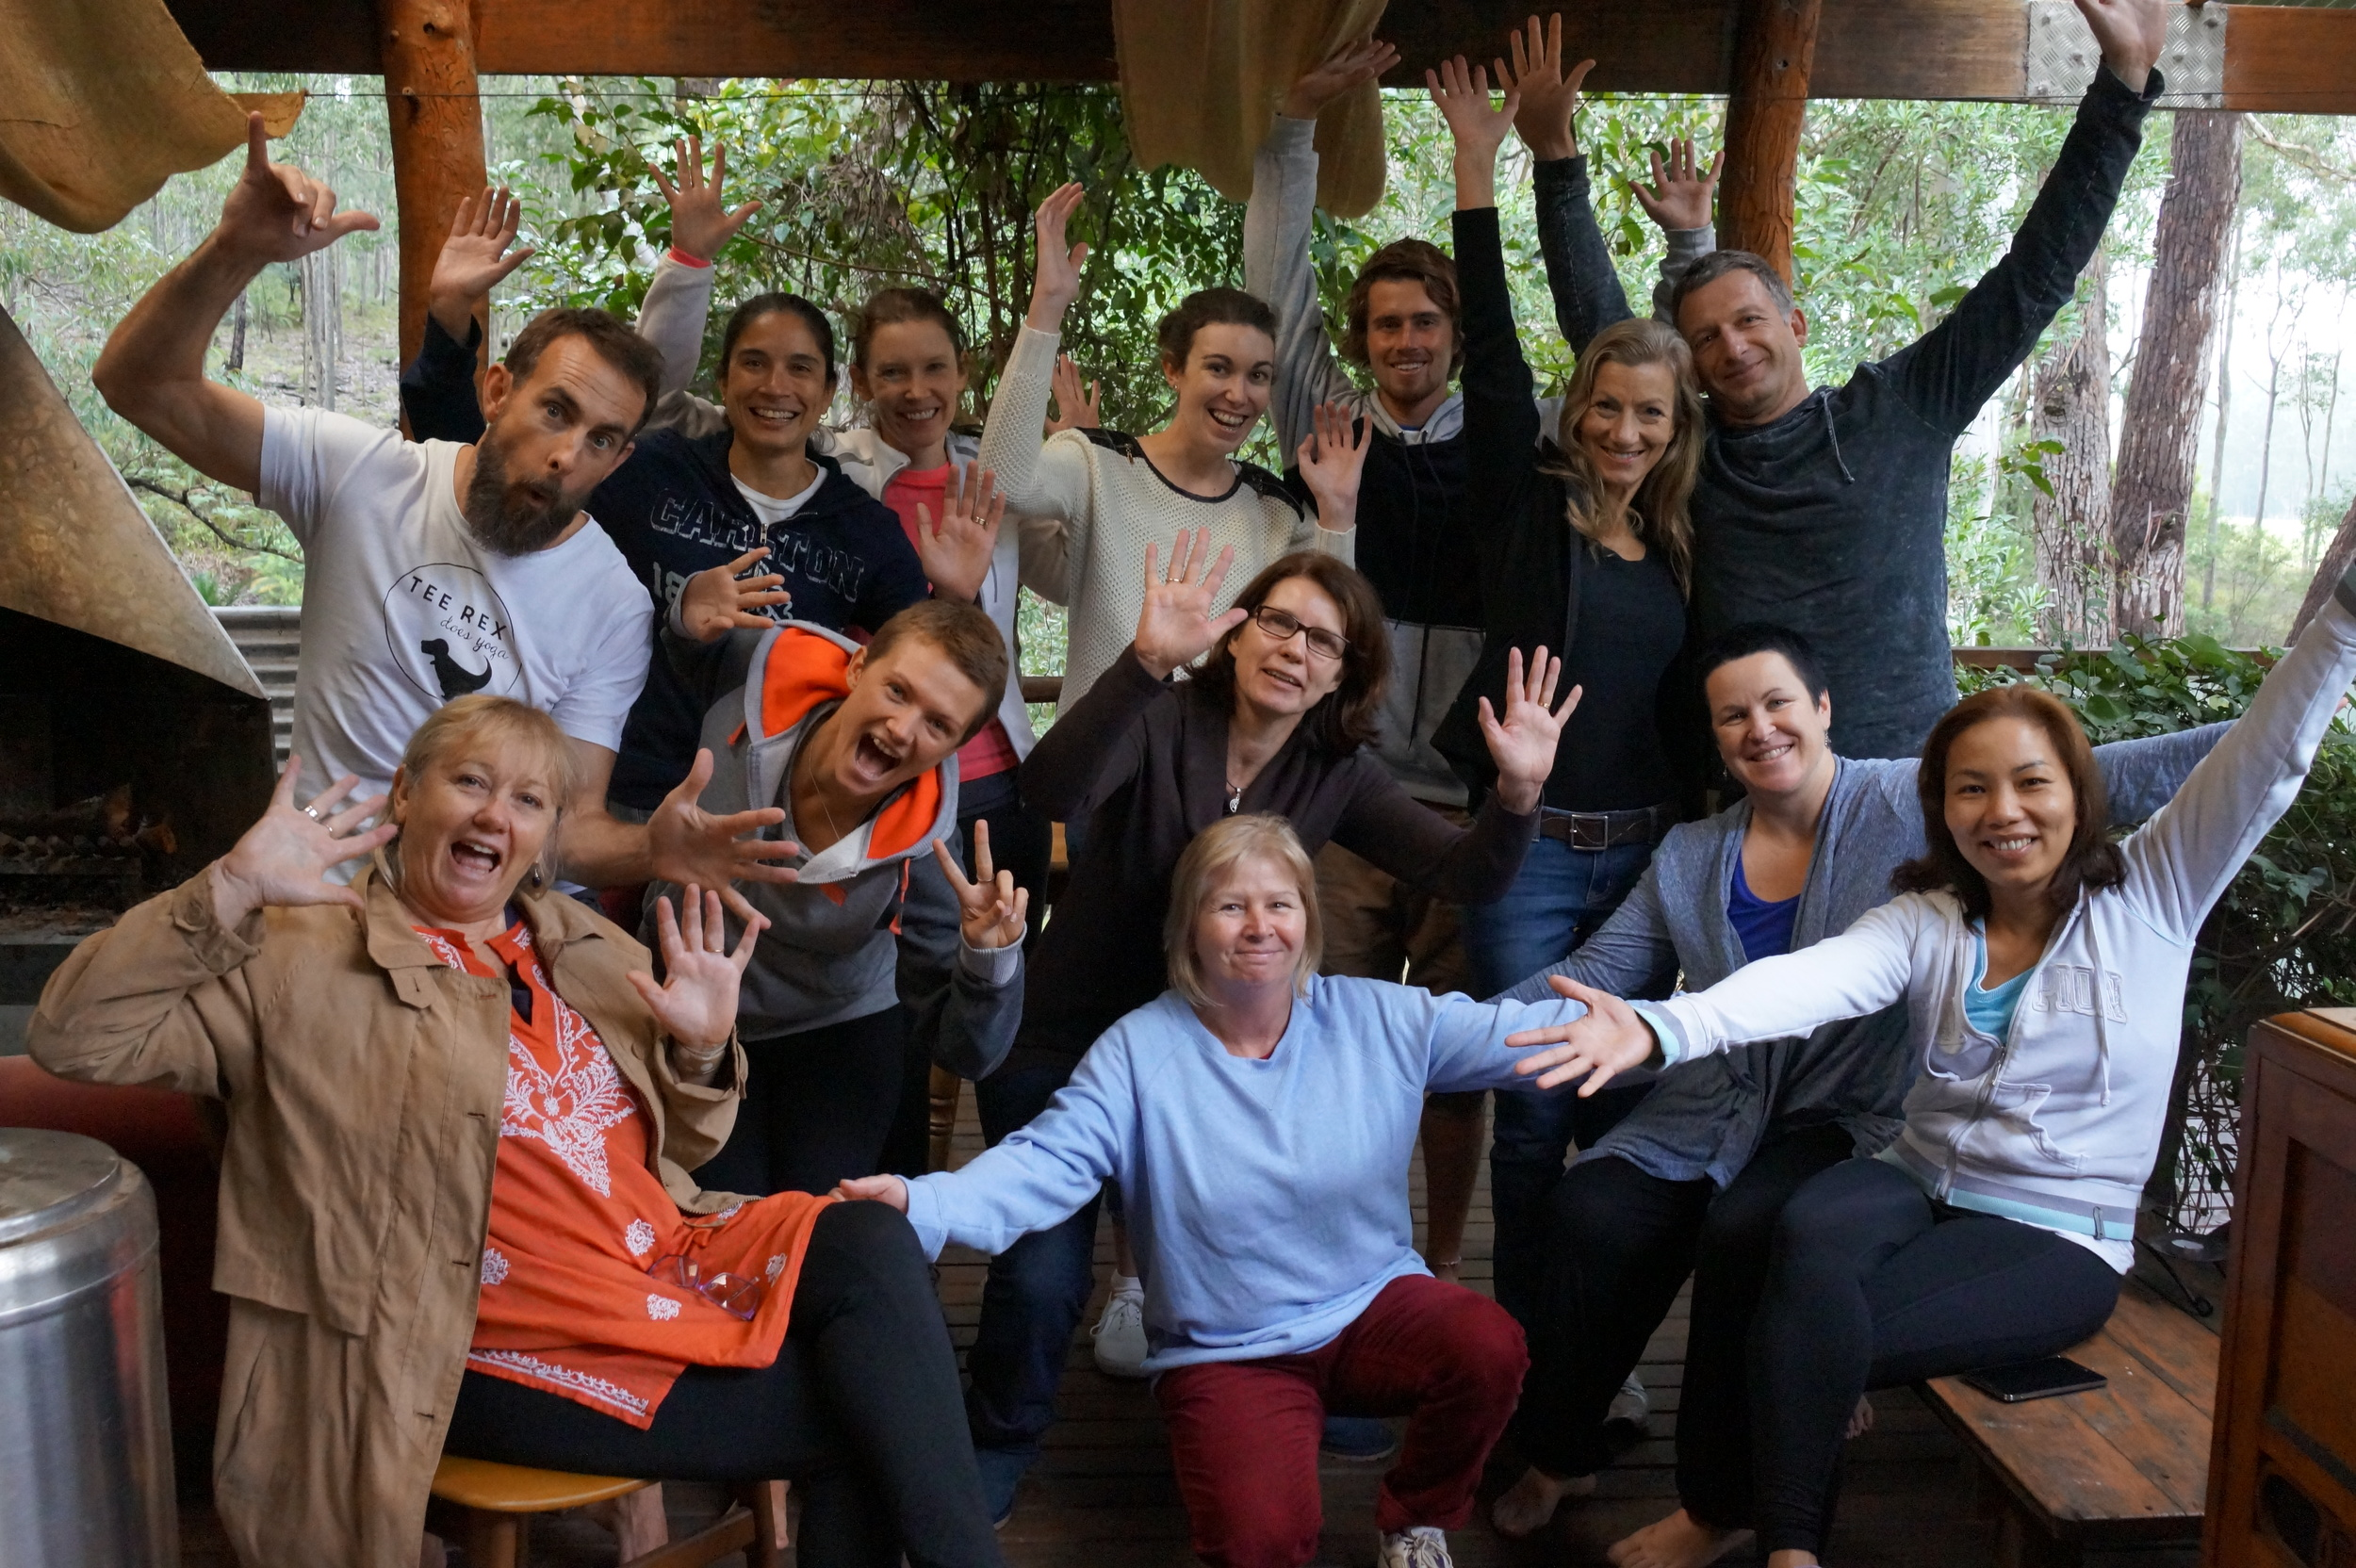 The YOGIS from the Rest and Retreat Bush Retreat with Kirsty and Matt Yoga 24-26 April 2015.